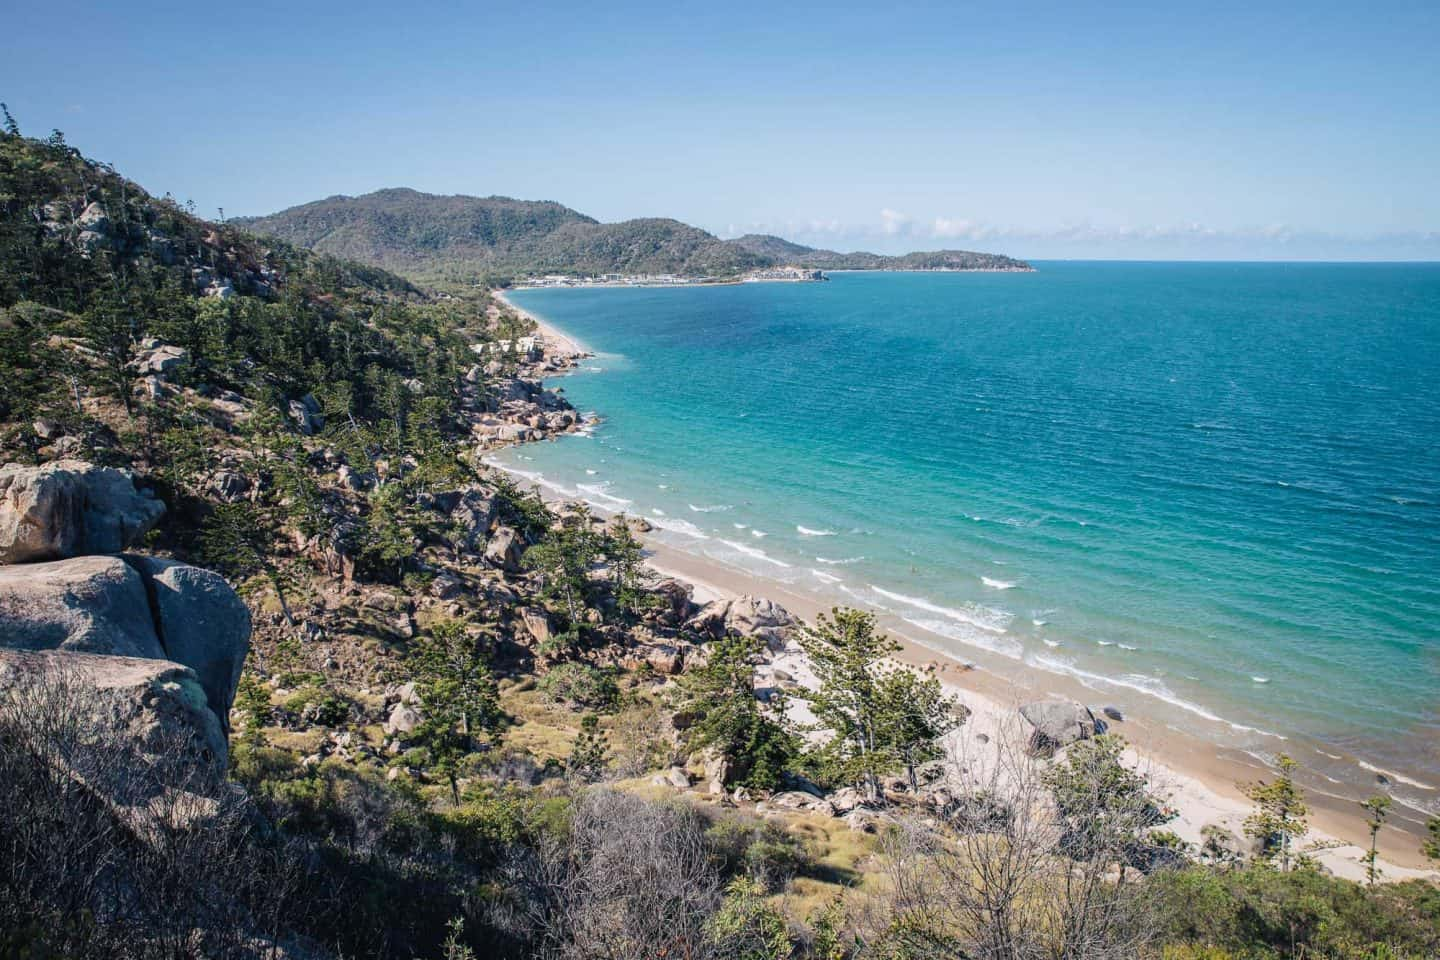 magnetic island, things to do on magnetic island, things to do in magnetic island, magnetic island australia, magnetic island queensland, rocky bay magnetic island